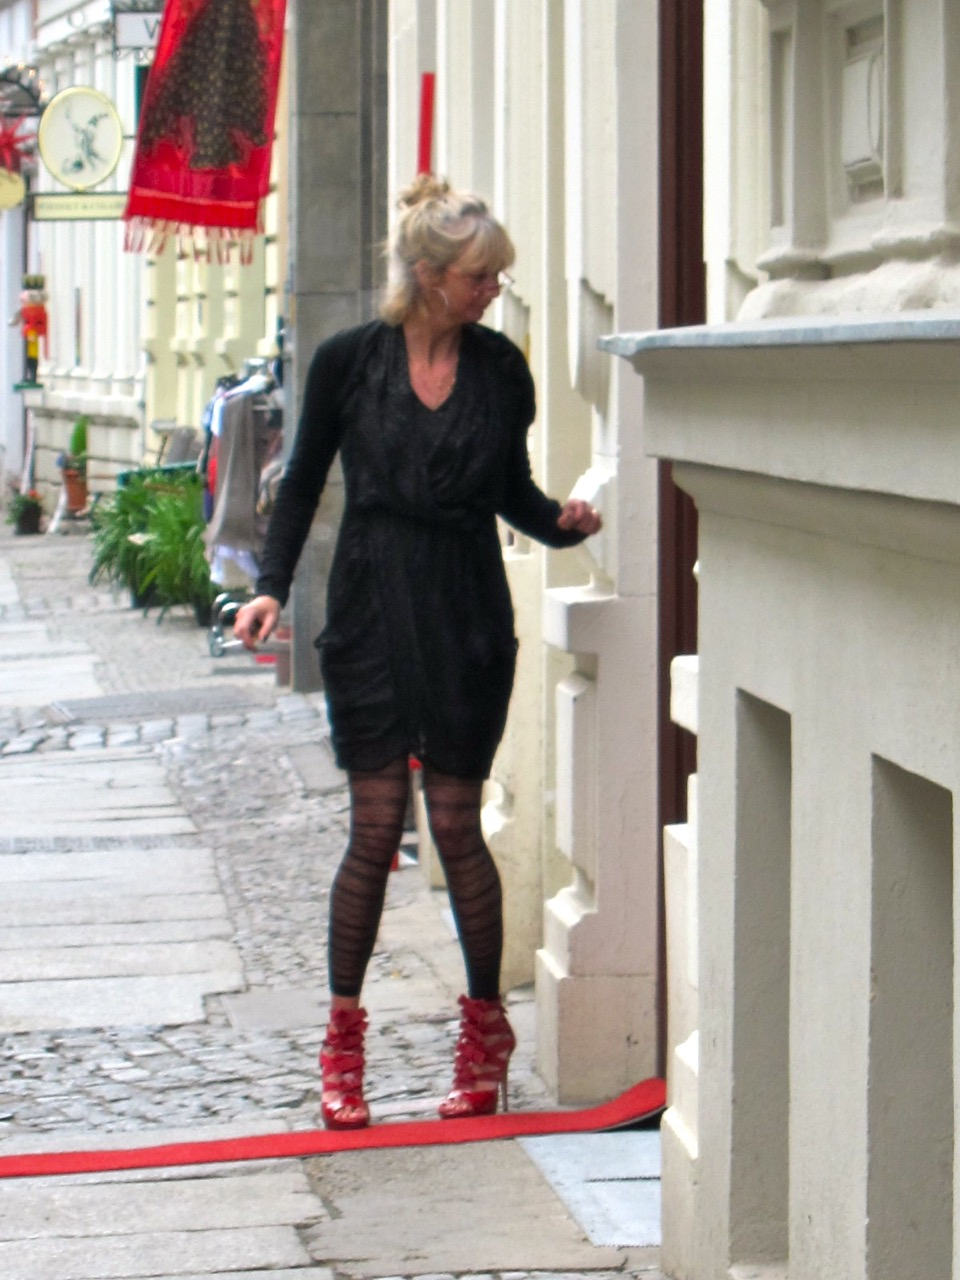 Red Shoes (Berlin)